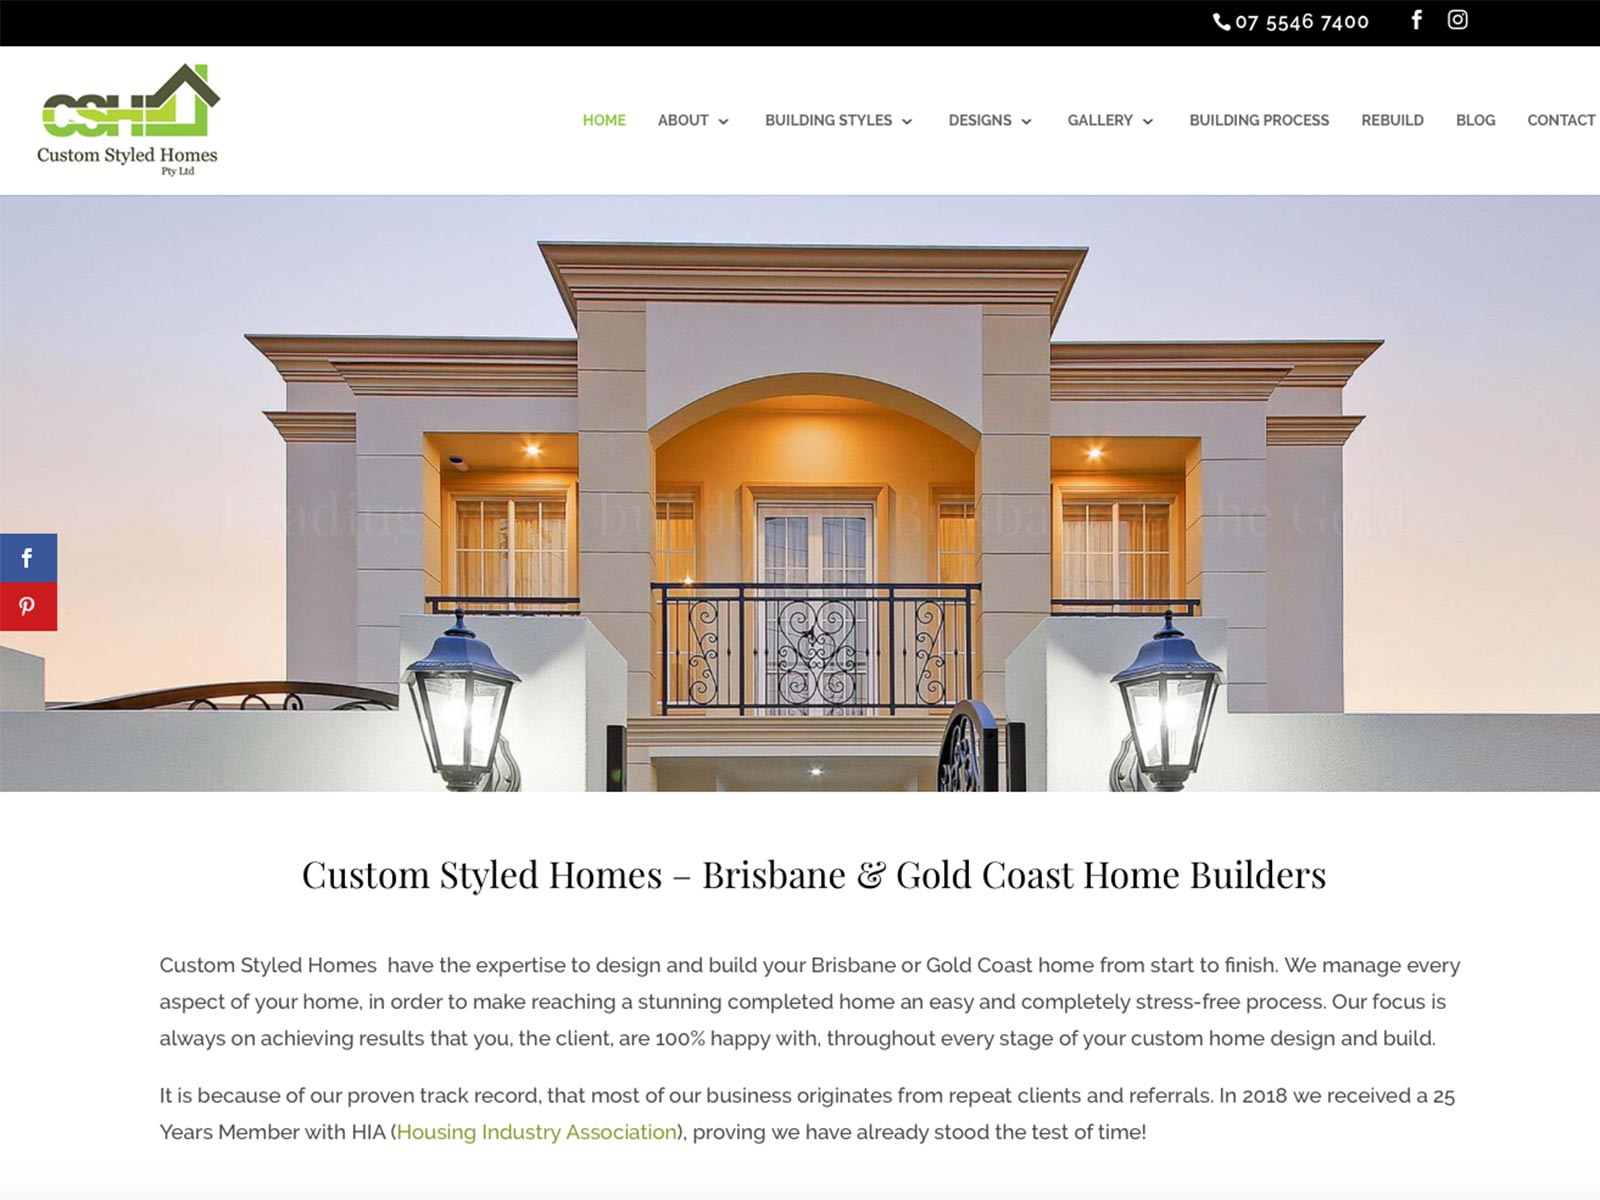 Custom Styled Homes - Web Development by GN Designs Brisbane